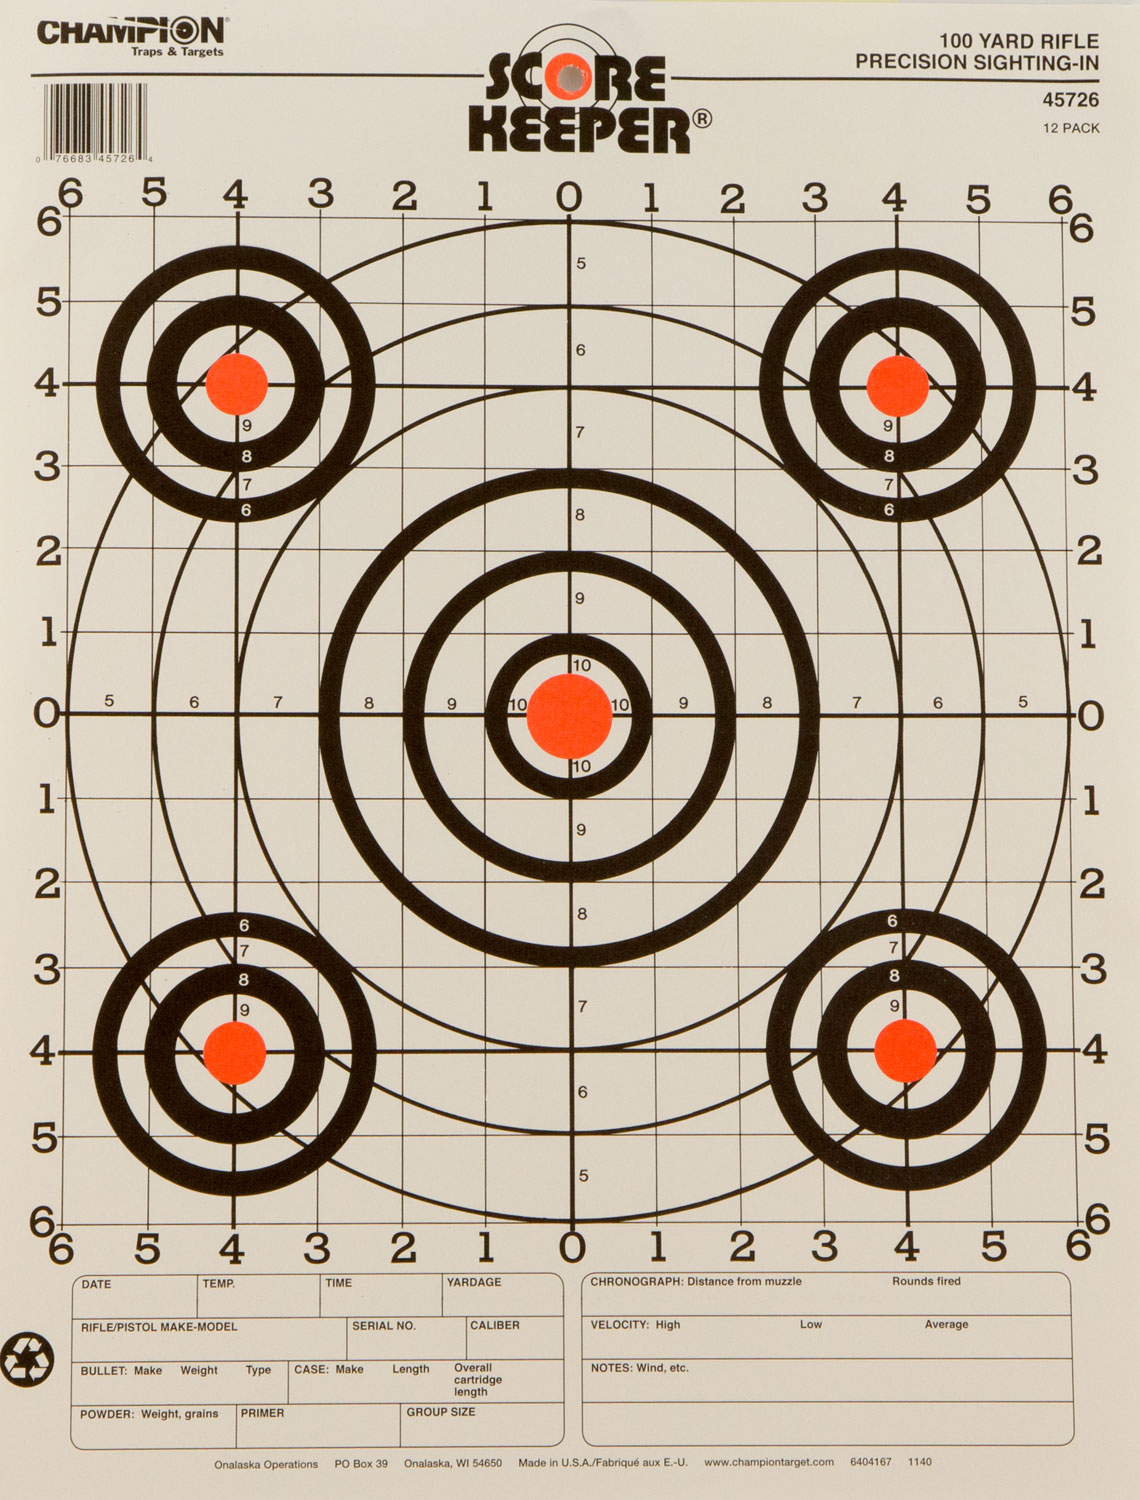 Champion Targets 45726 Scorekeeper Rifle Sight-In 12 Pack